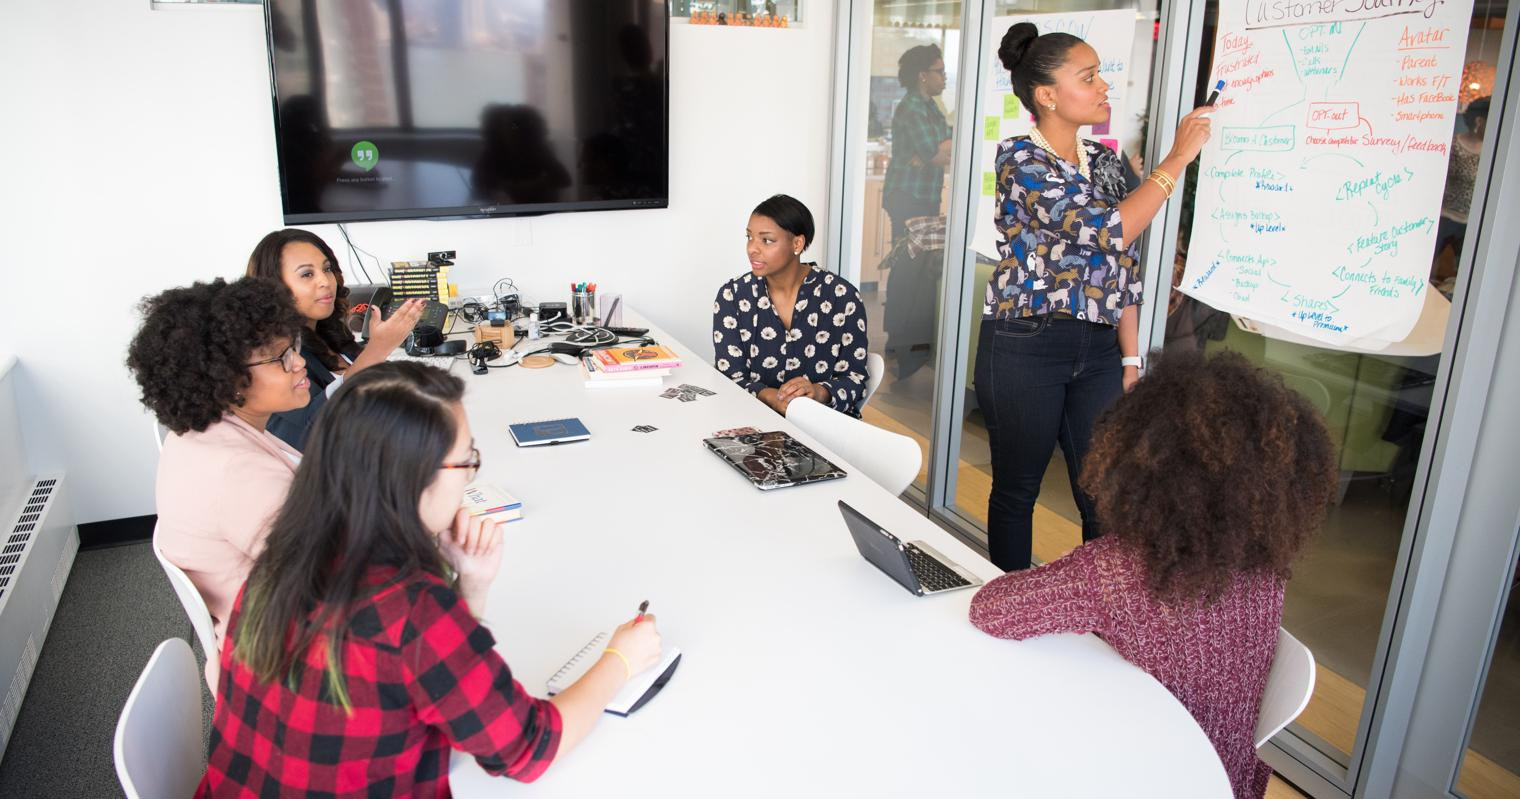 3 Things Companies Can Learn About Creating Inclusive Cultures From This All-Female Tech Startup